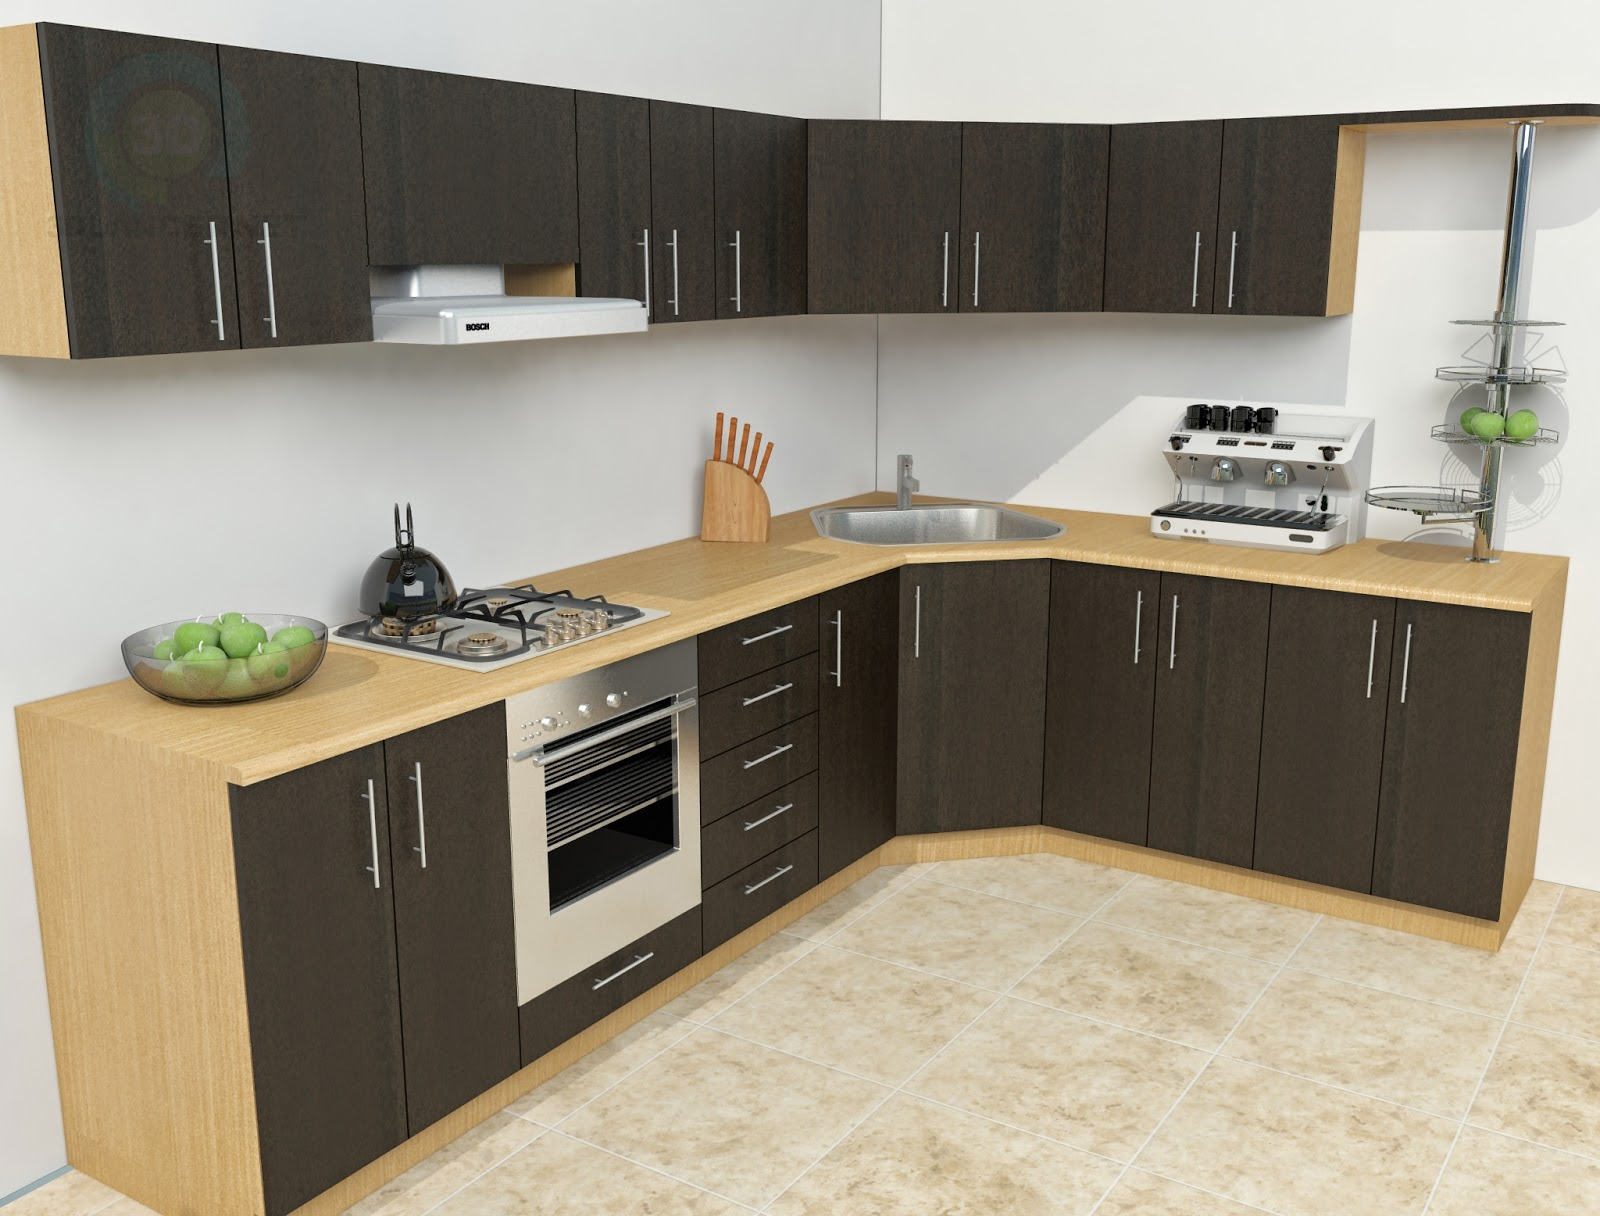 28 model kitchen designs kitchen model homes for House kitchen model